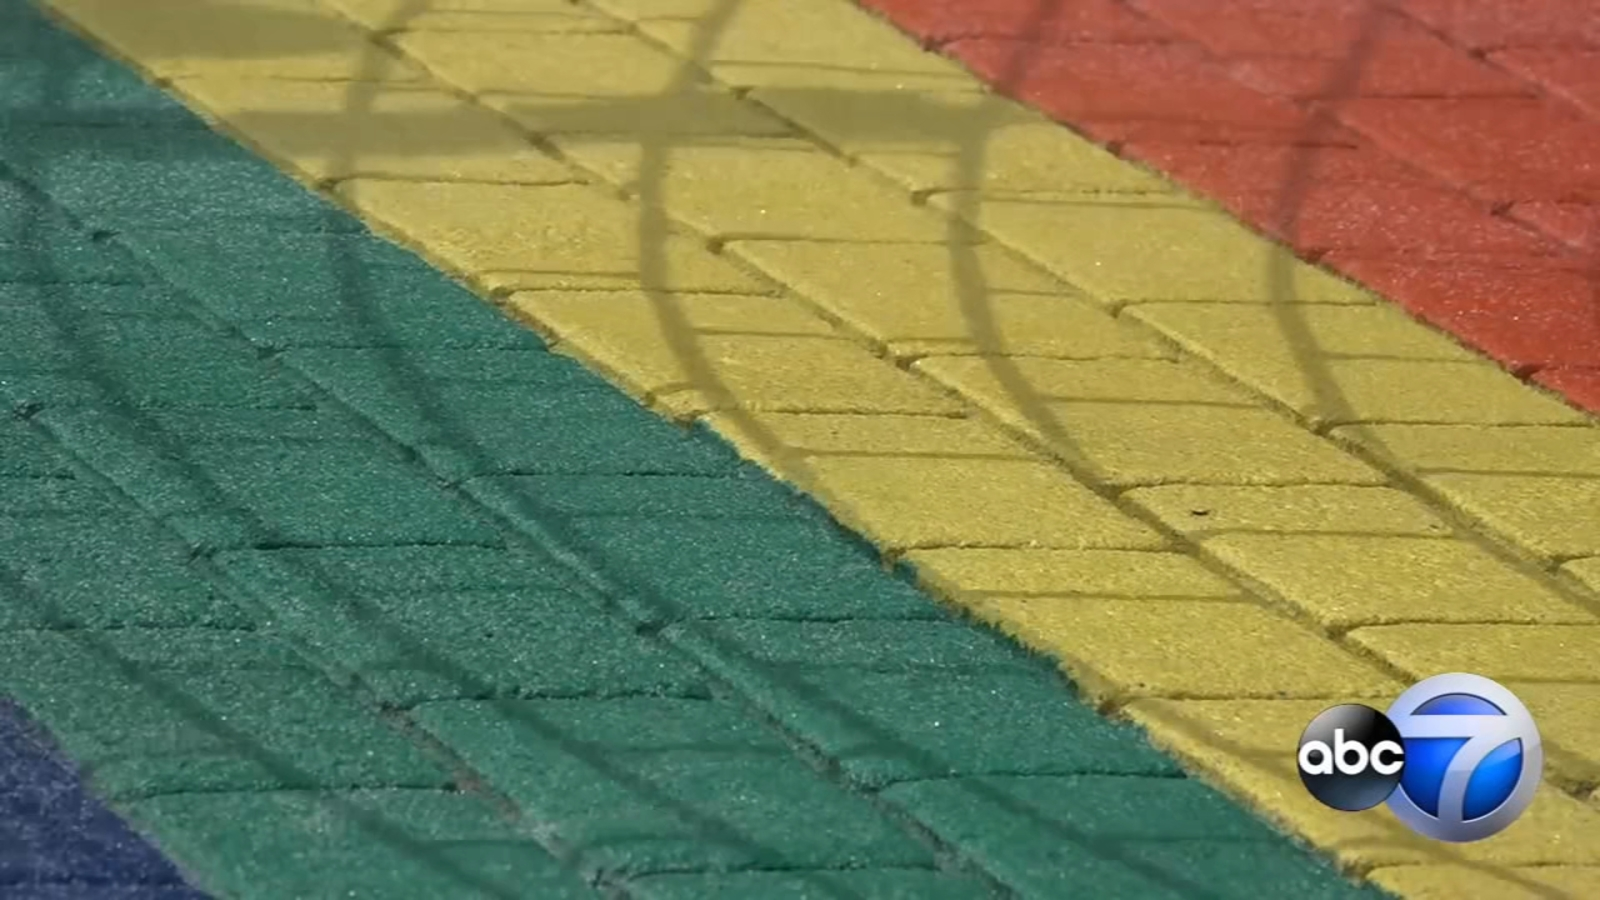 PRIDE 2019: What to know about Boystown's new rainbow crosswalks